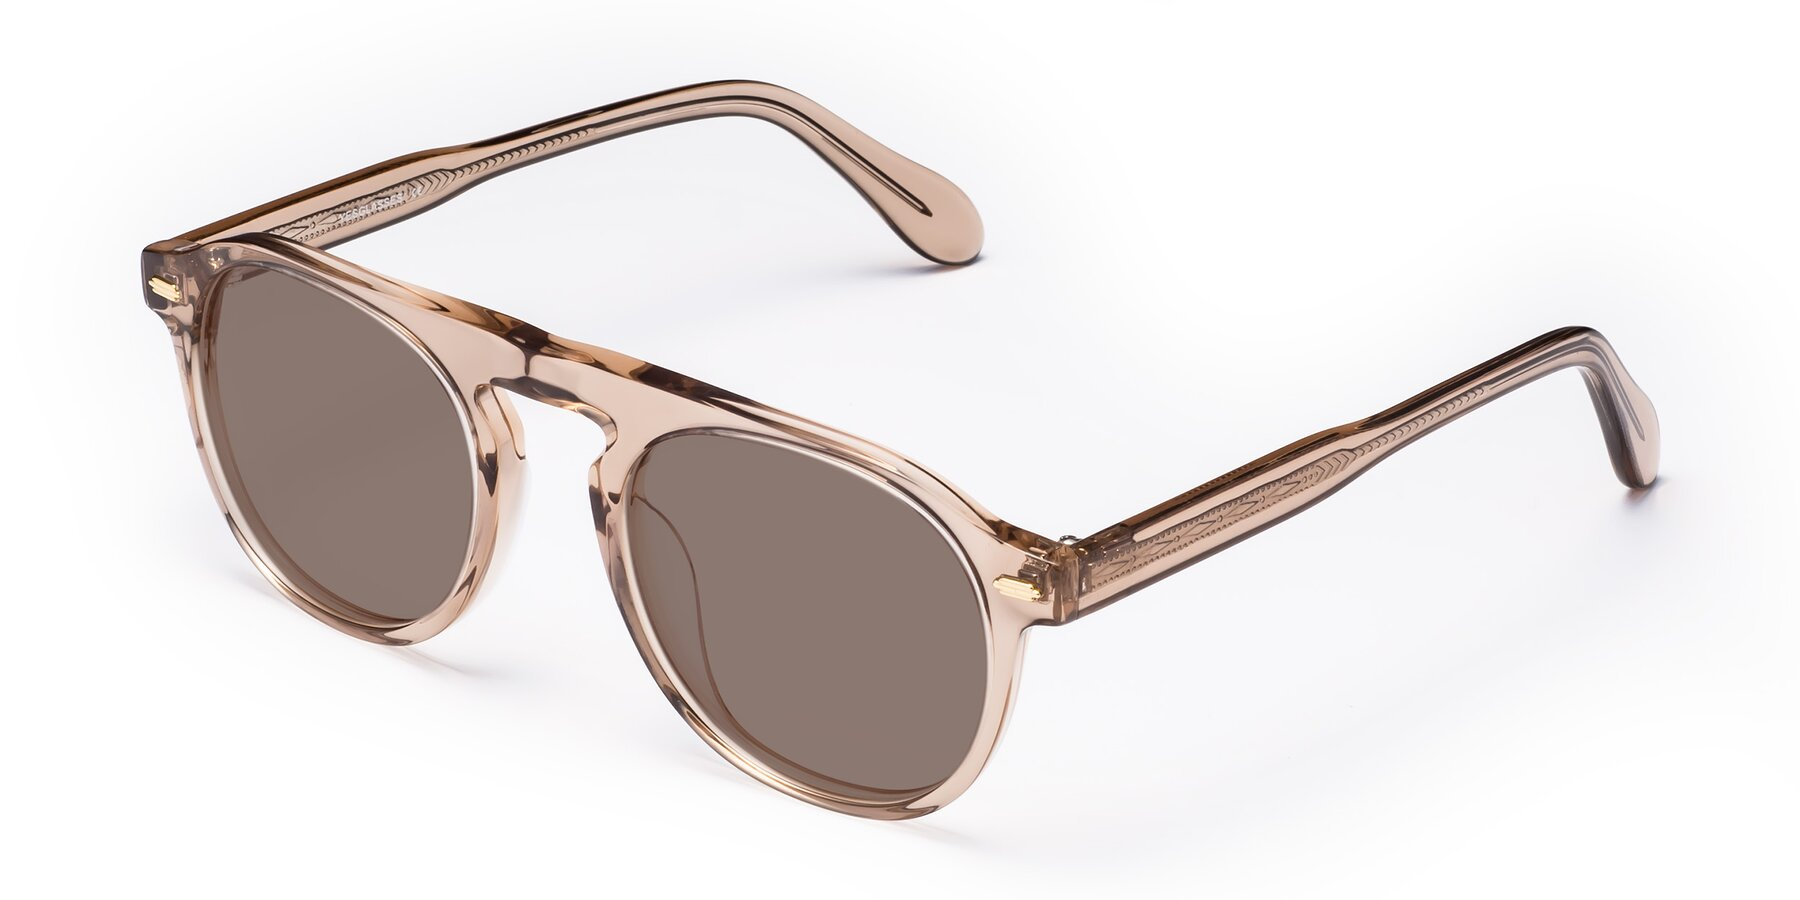 Angle of Mufasa in light Brown with Medium Brown Tinted Lenses